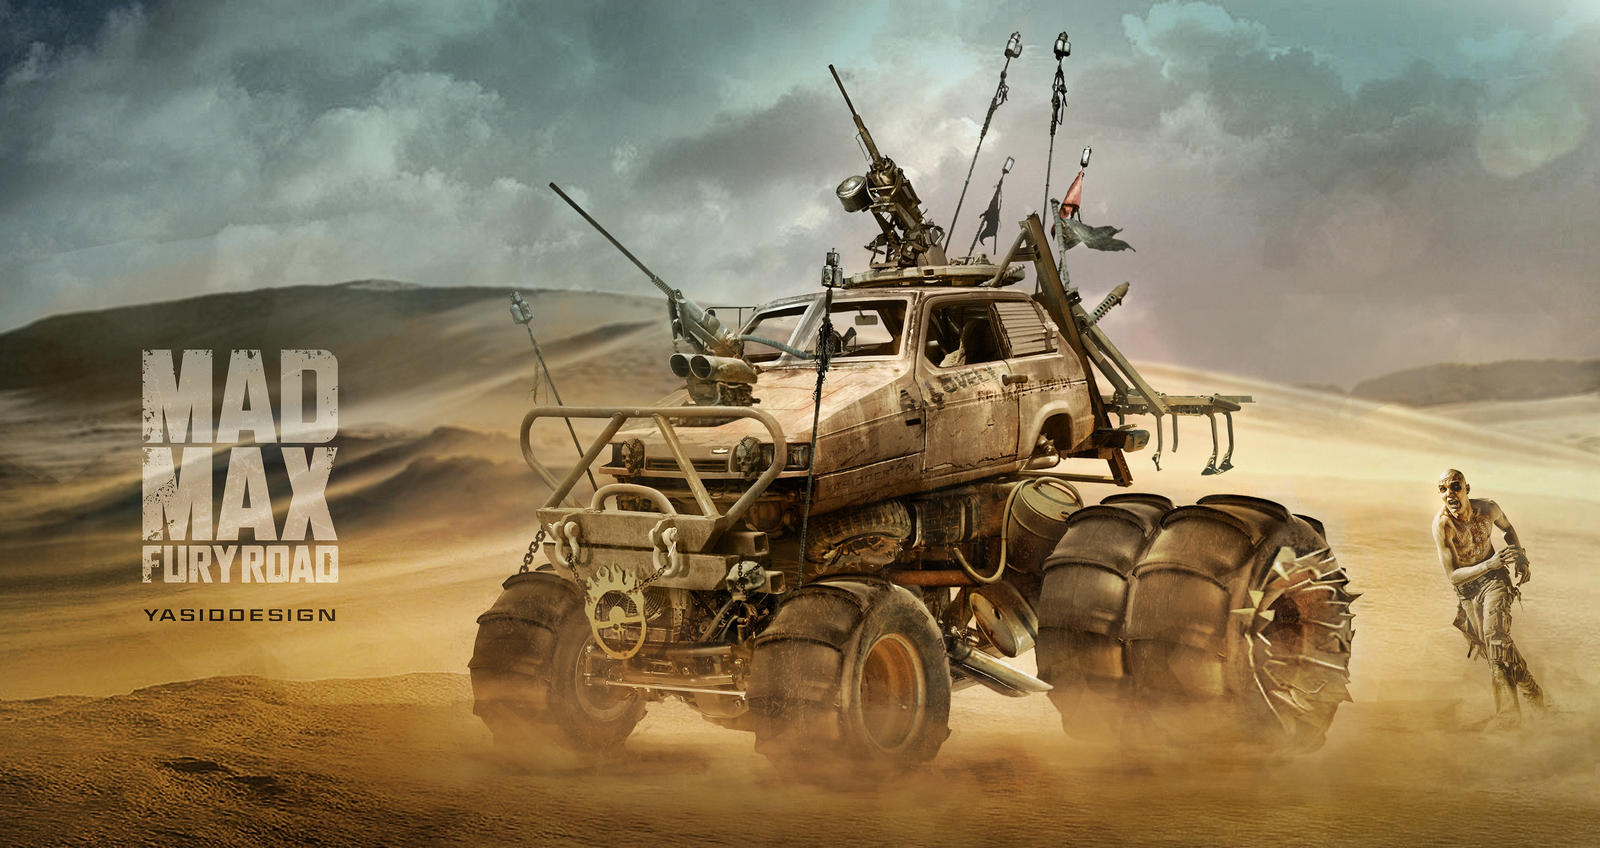 All Out Offroad >> Reliant Robin Mad max by yasiddesign on DeviantArt